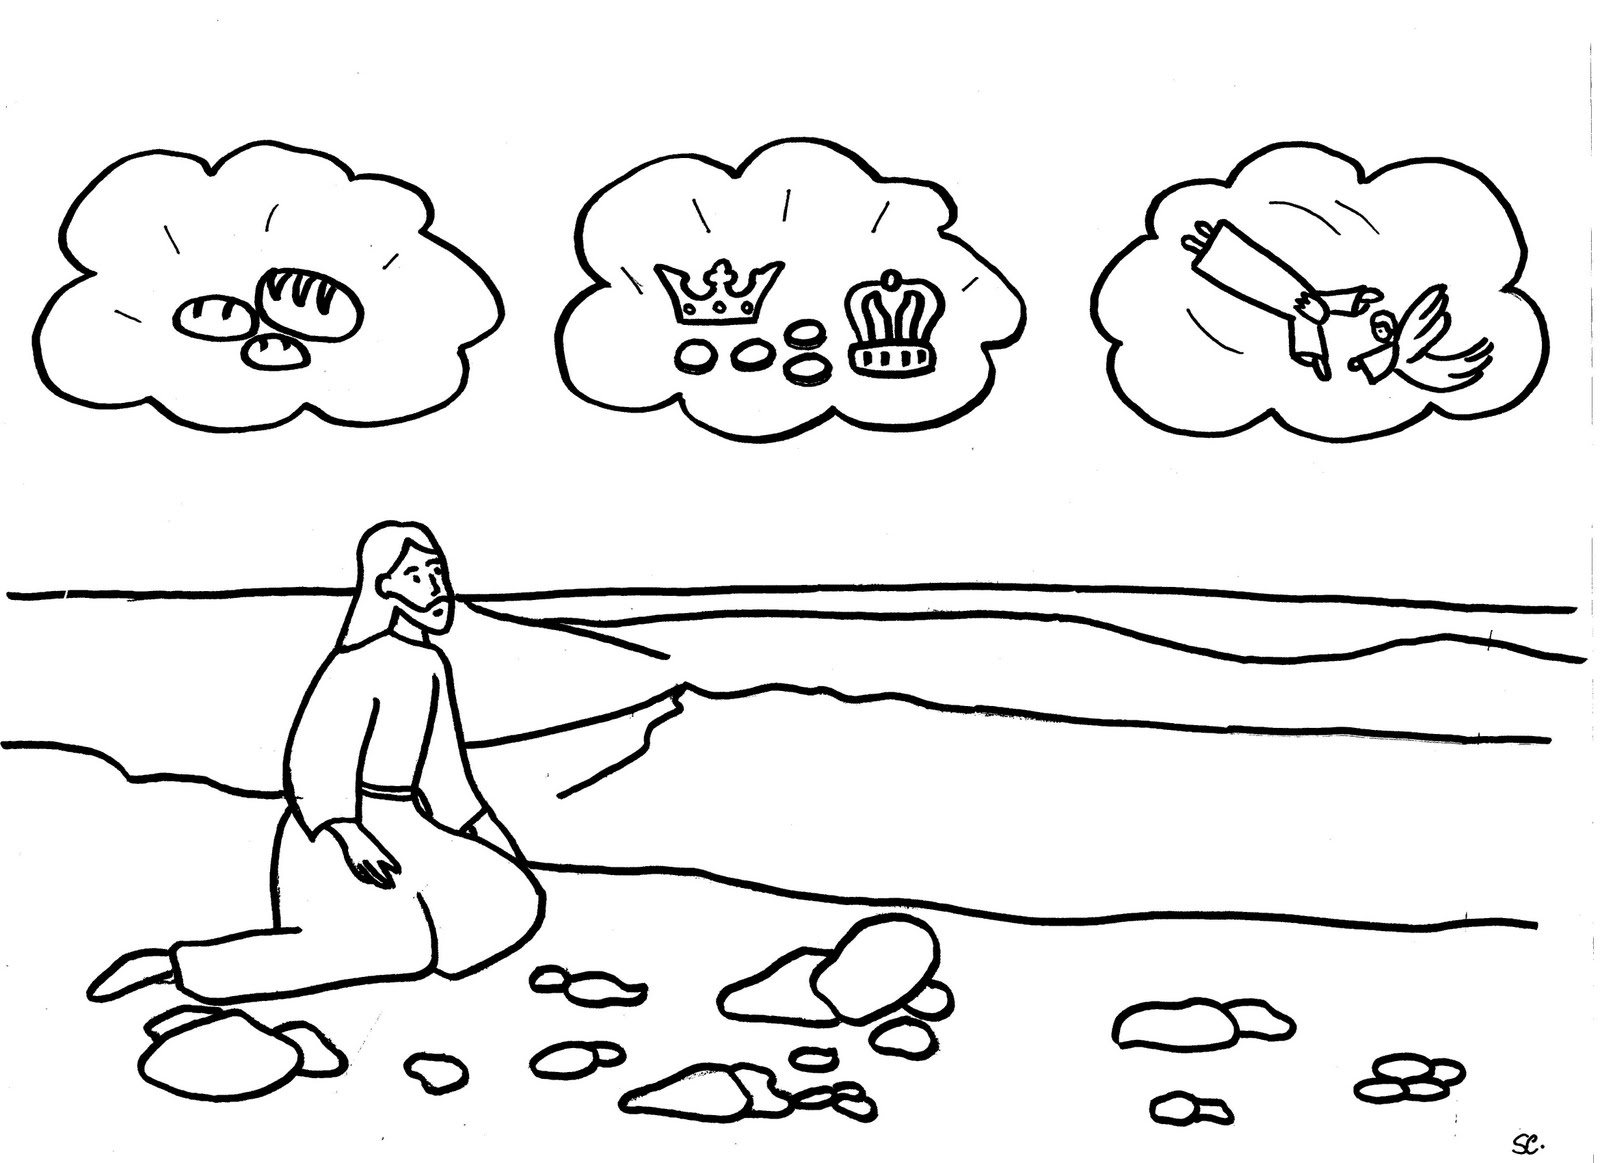 cendre coloring pages - photo#24